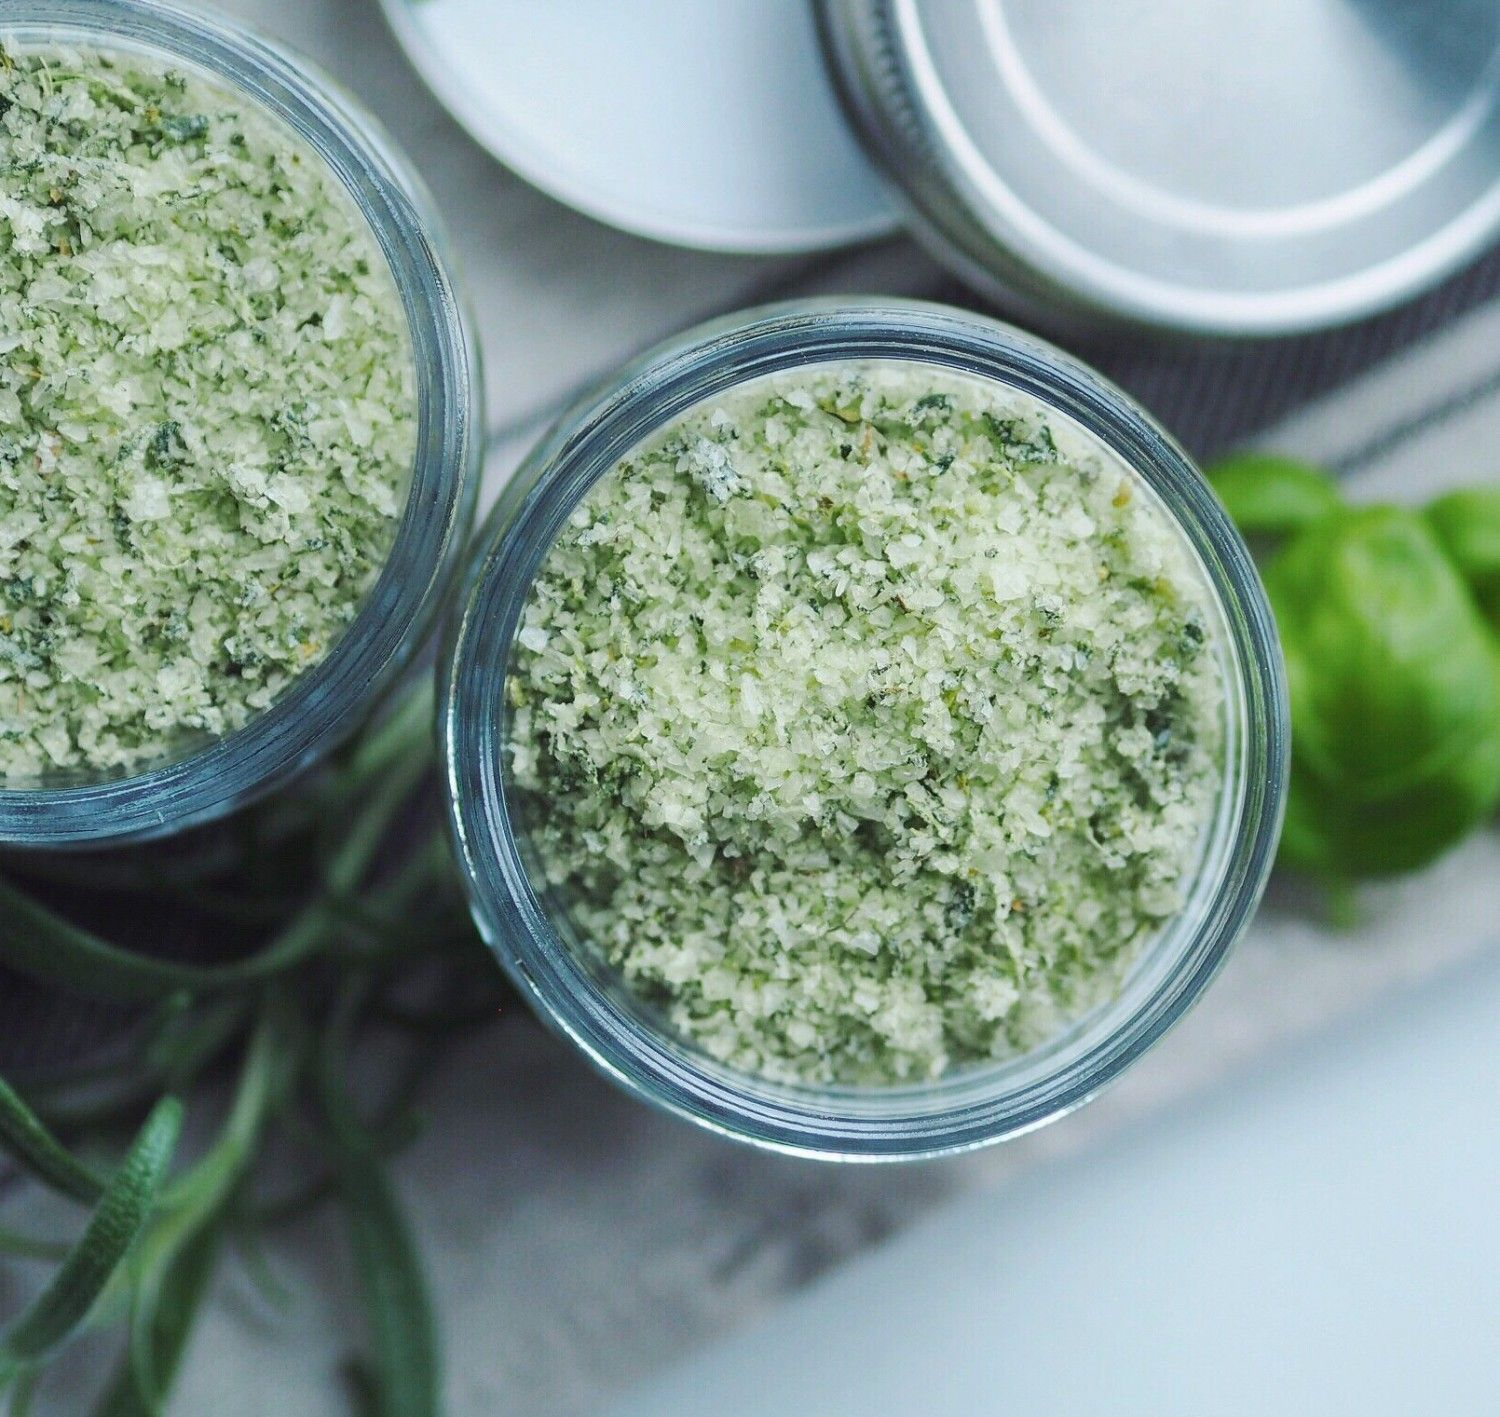 Homemade herb salt – perfect for gifting! | A Million Miles